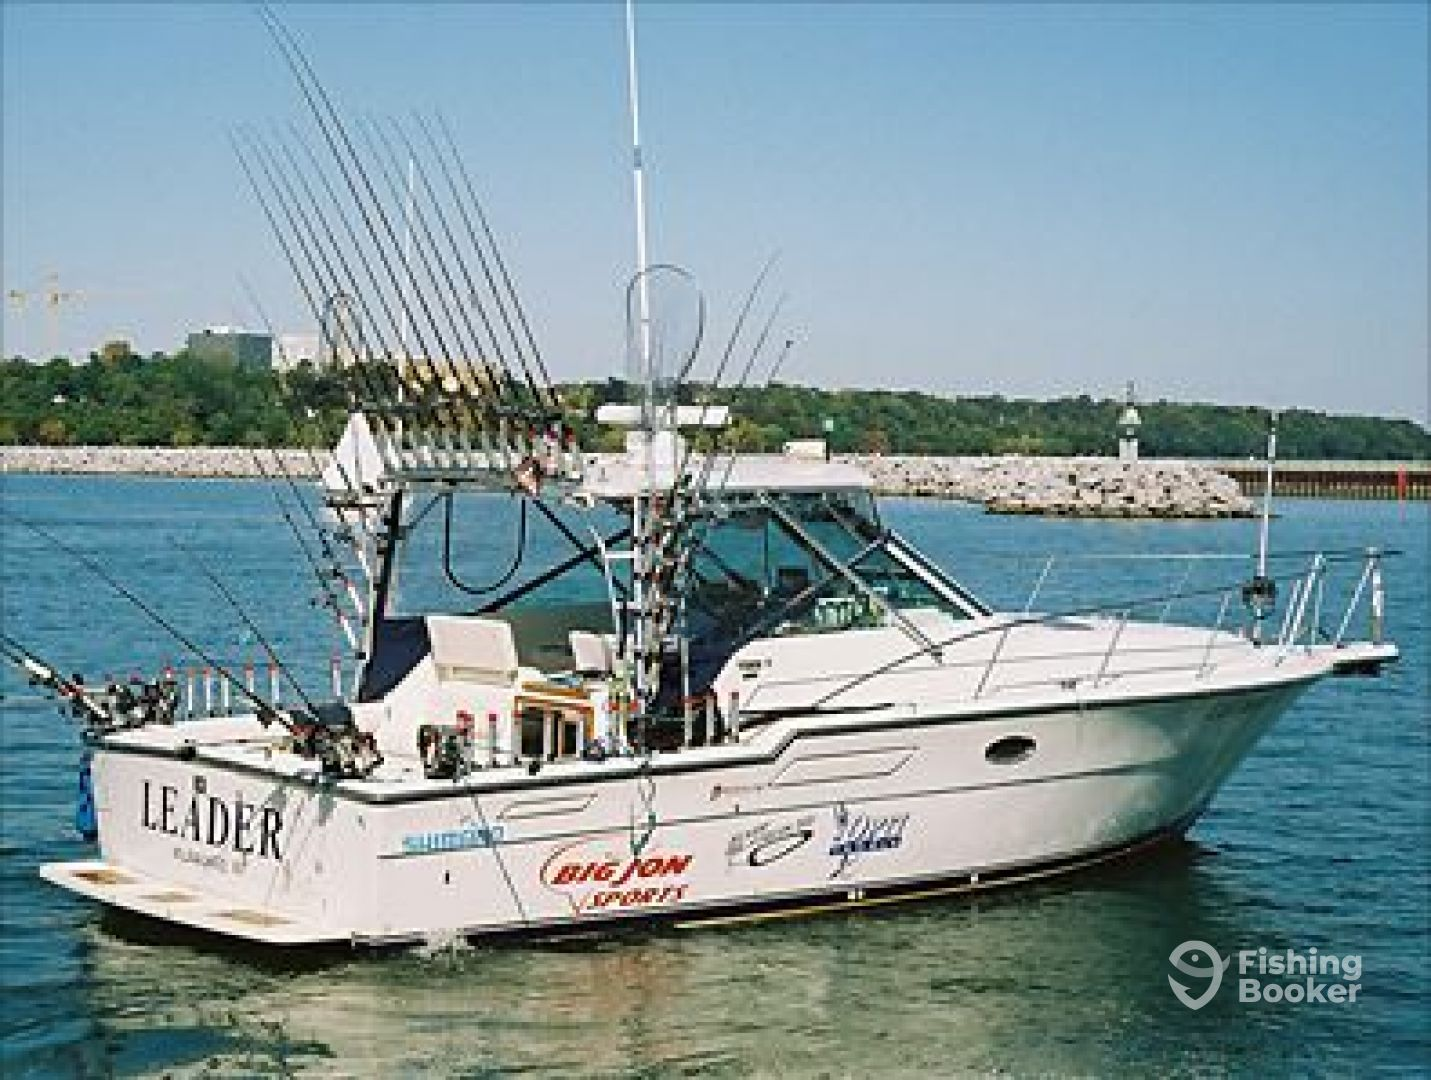 Jack s charter service milwaukee wi fishingbooker for Lake fishing boats